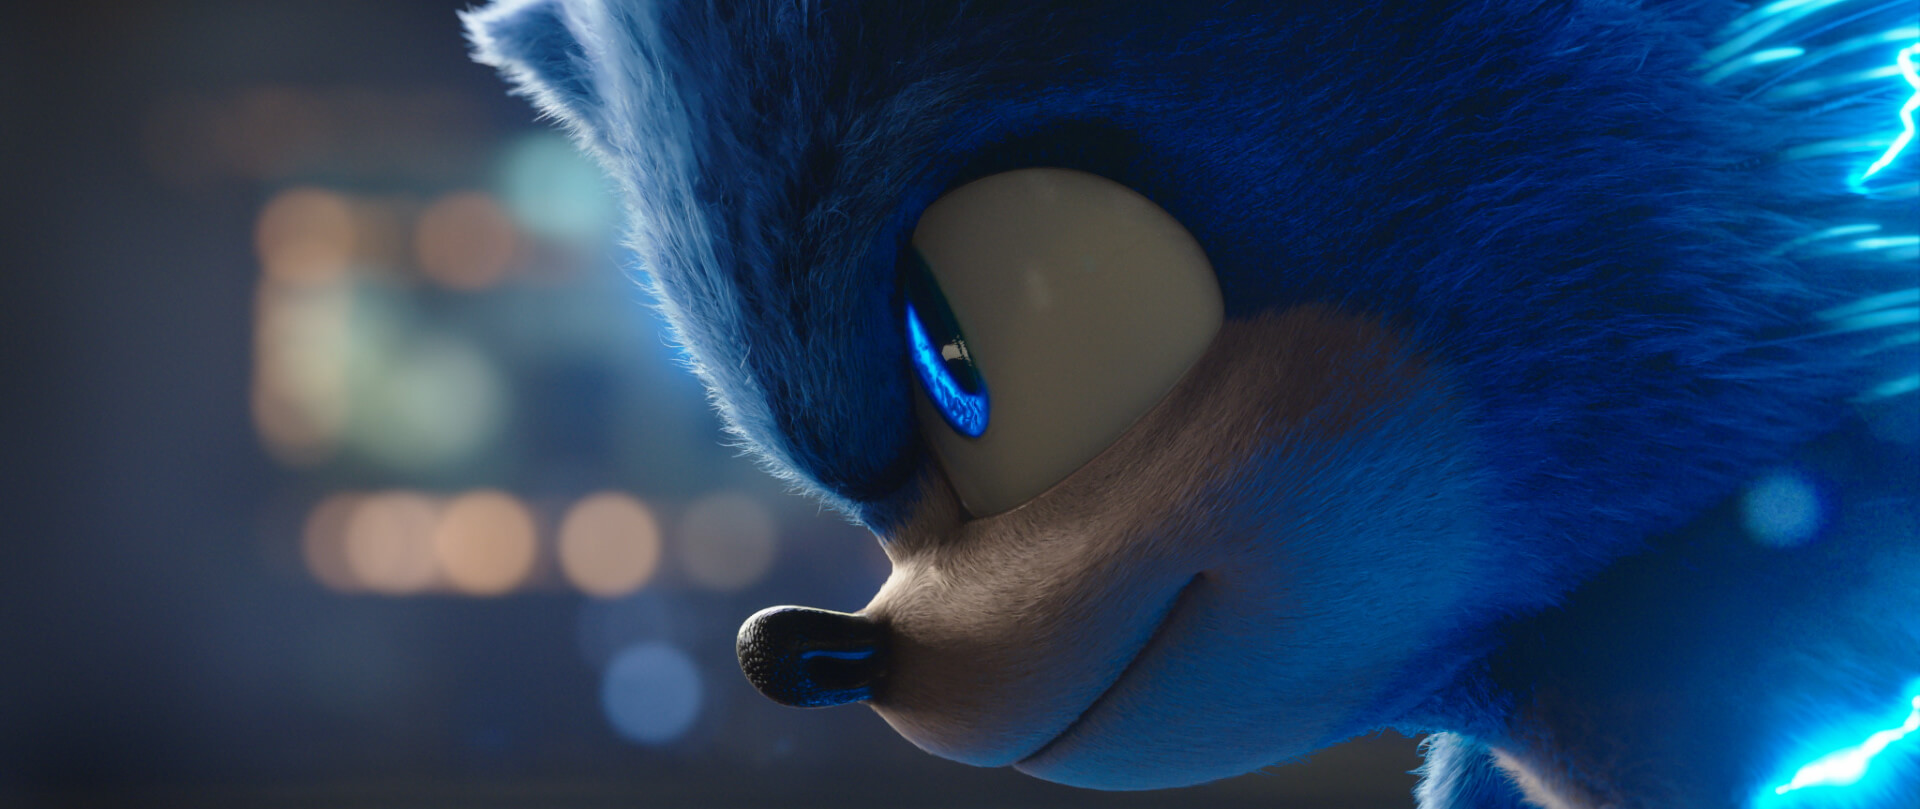 Sonic The Hedgehog 2 - screenshot dal primo film